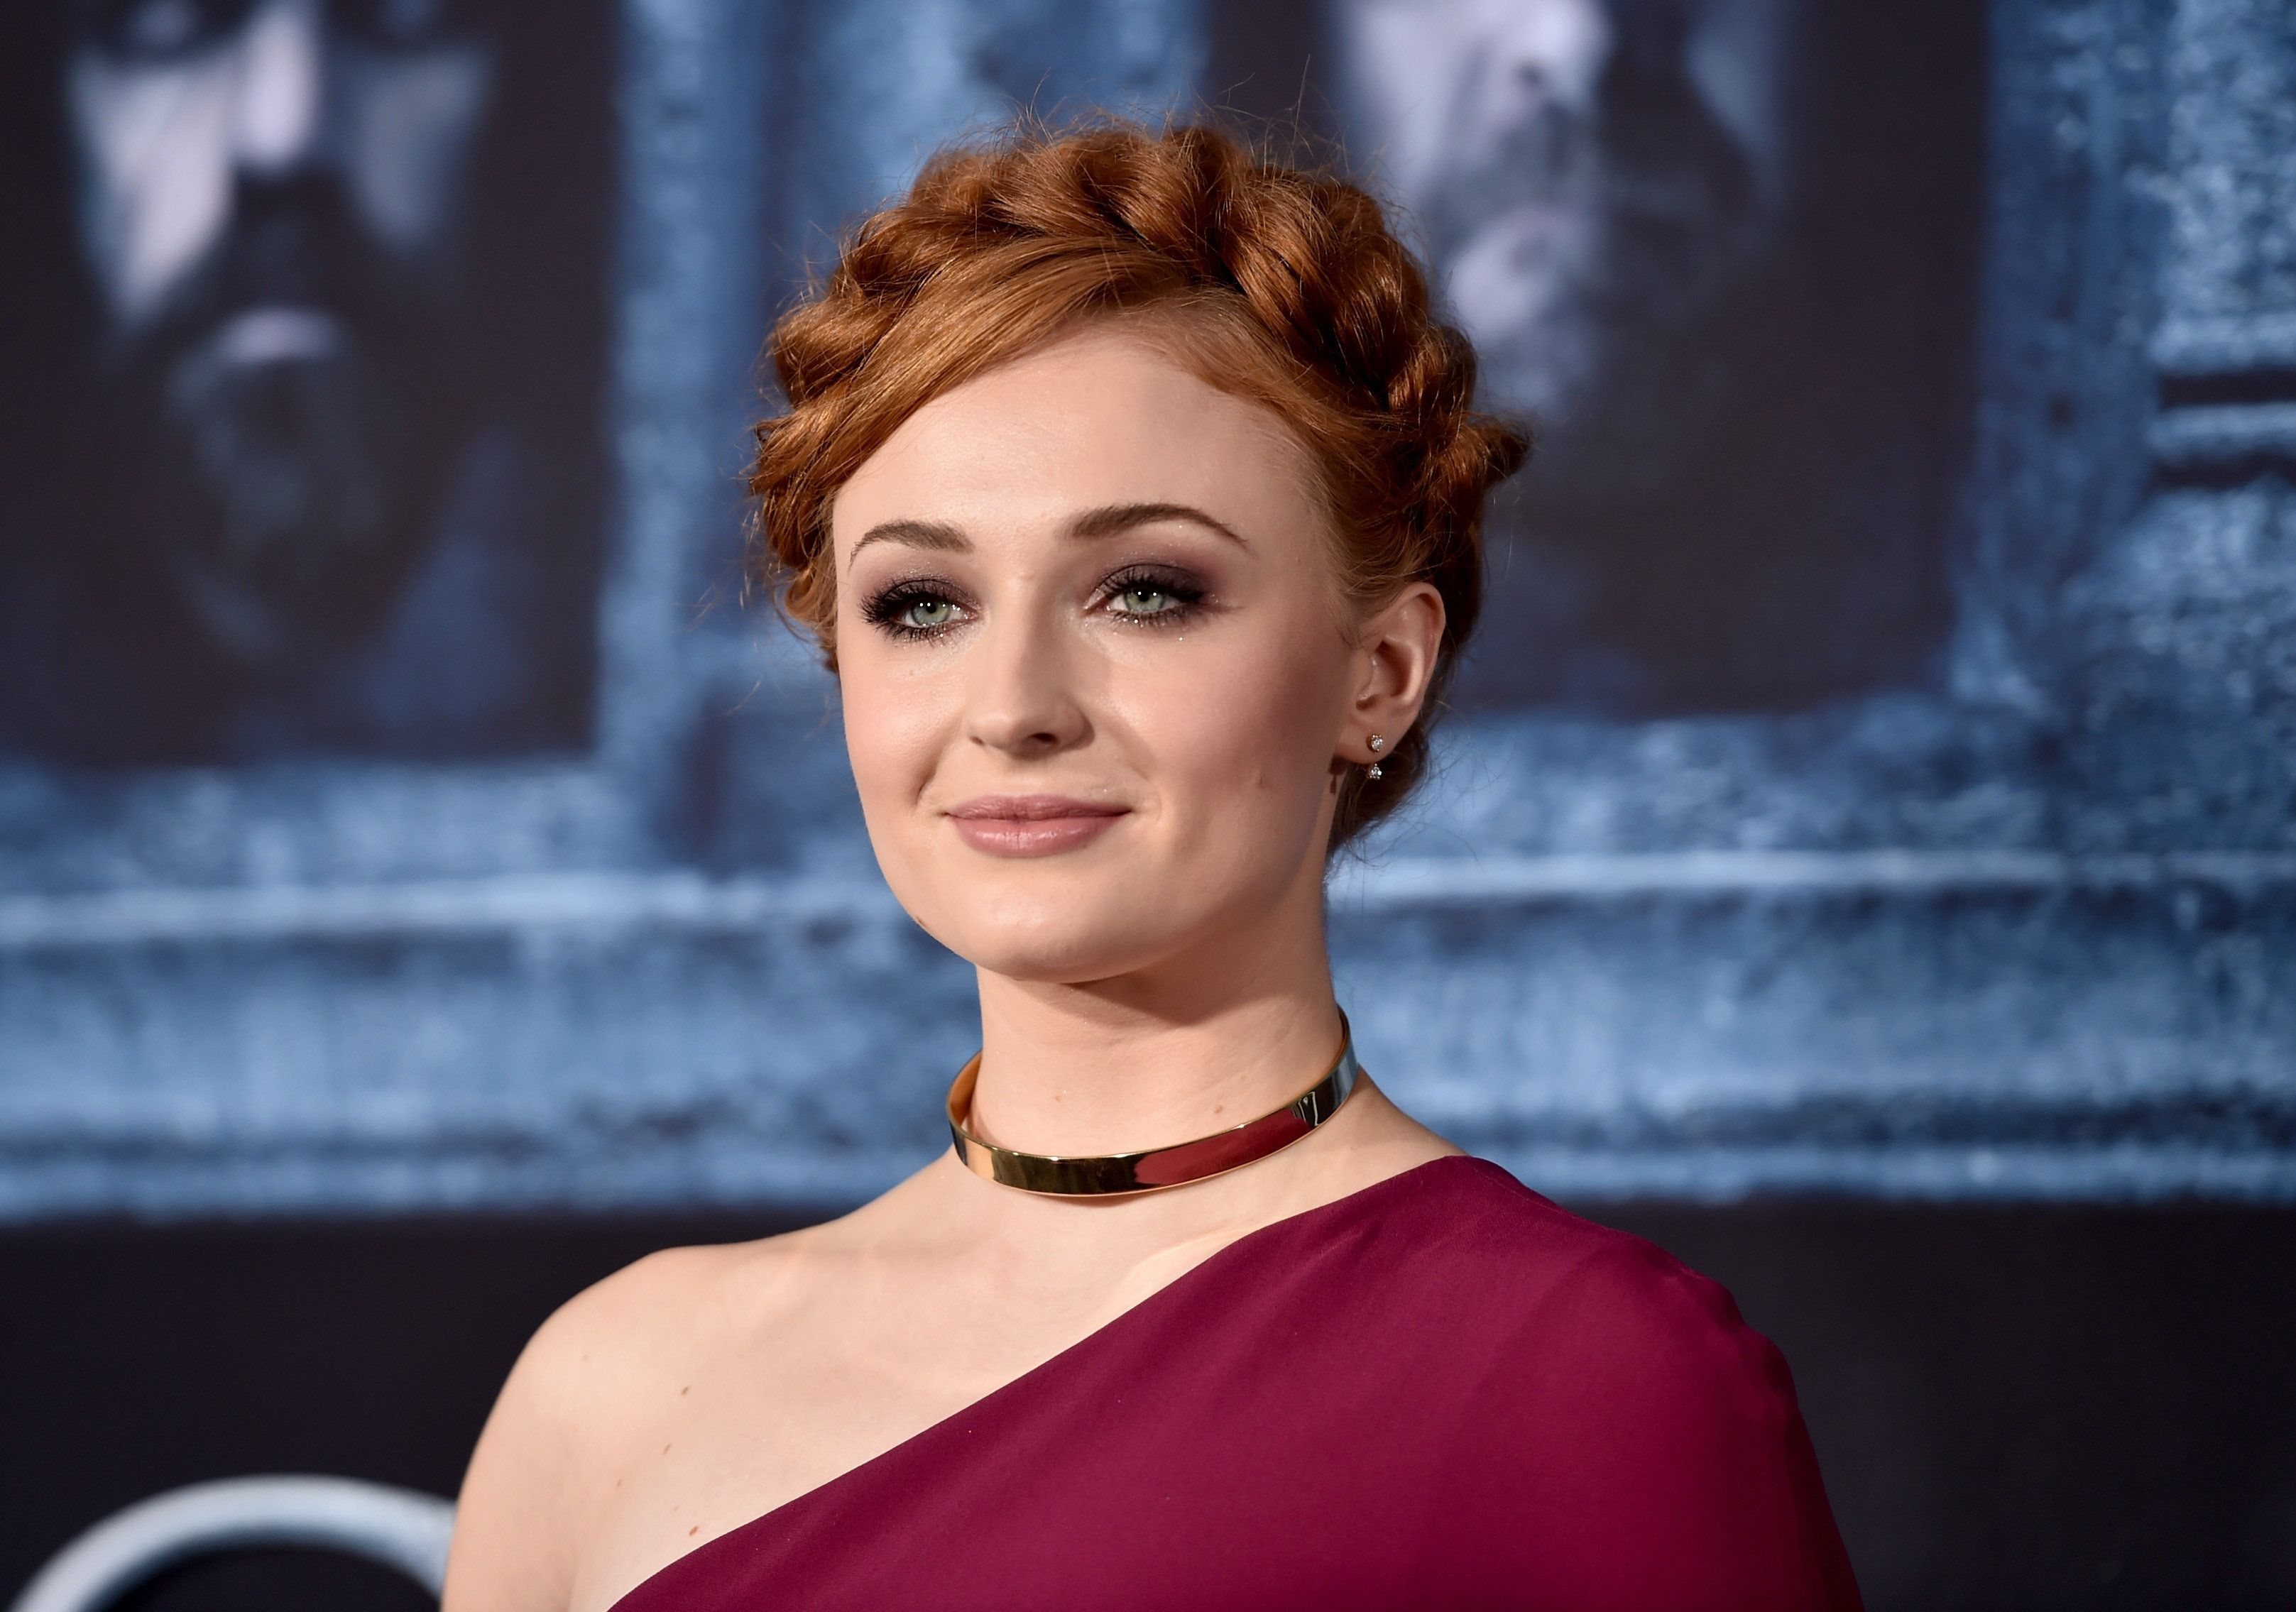 HOLLYWOOD, CALIFORNIA - APRIL 10:  Actress Sophie Turner attends the premiere of HBO's 'Game Of Thrones' Season 6 at TCL Chinese Theatre on April 10, 2016 in Hollywood, California.  (Photo by Alberto E. Rodriguez/Getty Images)